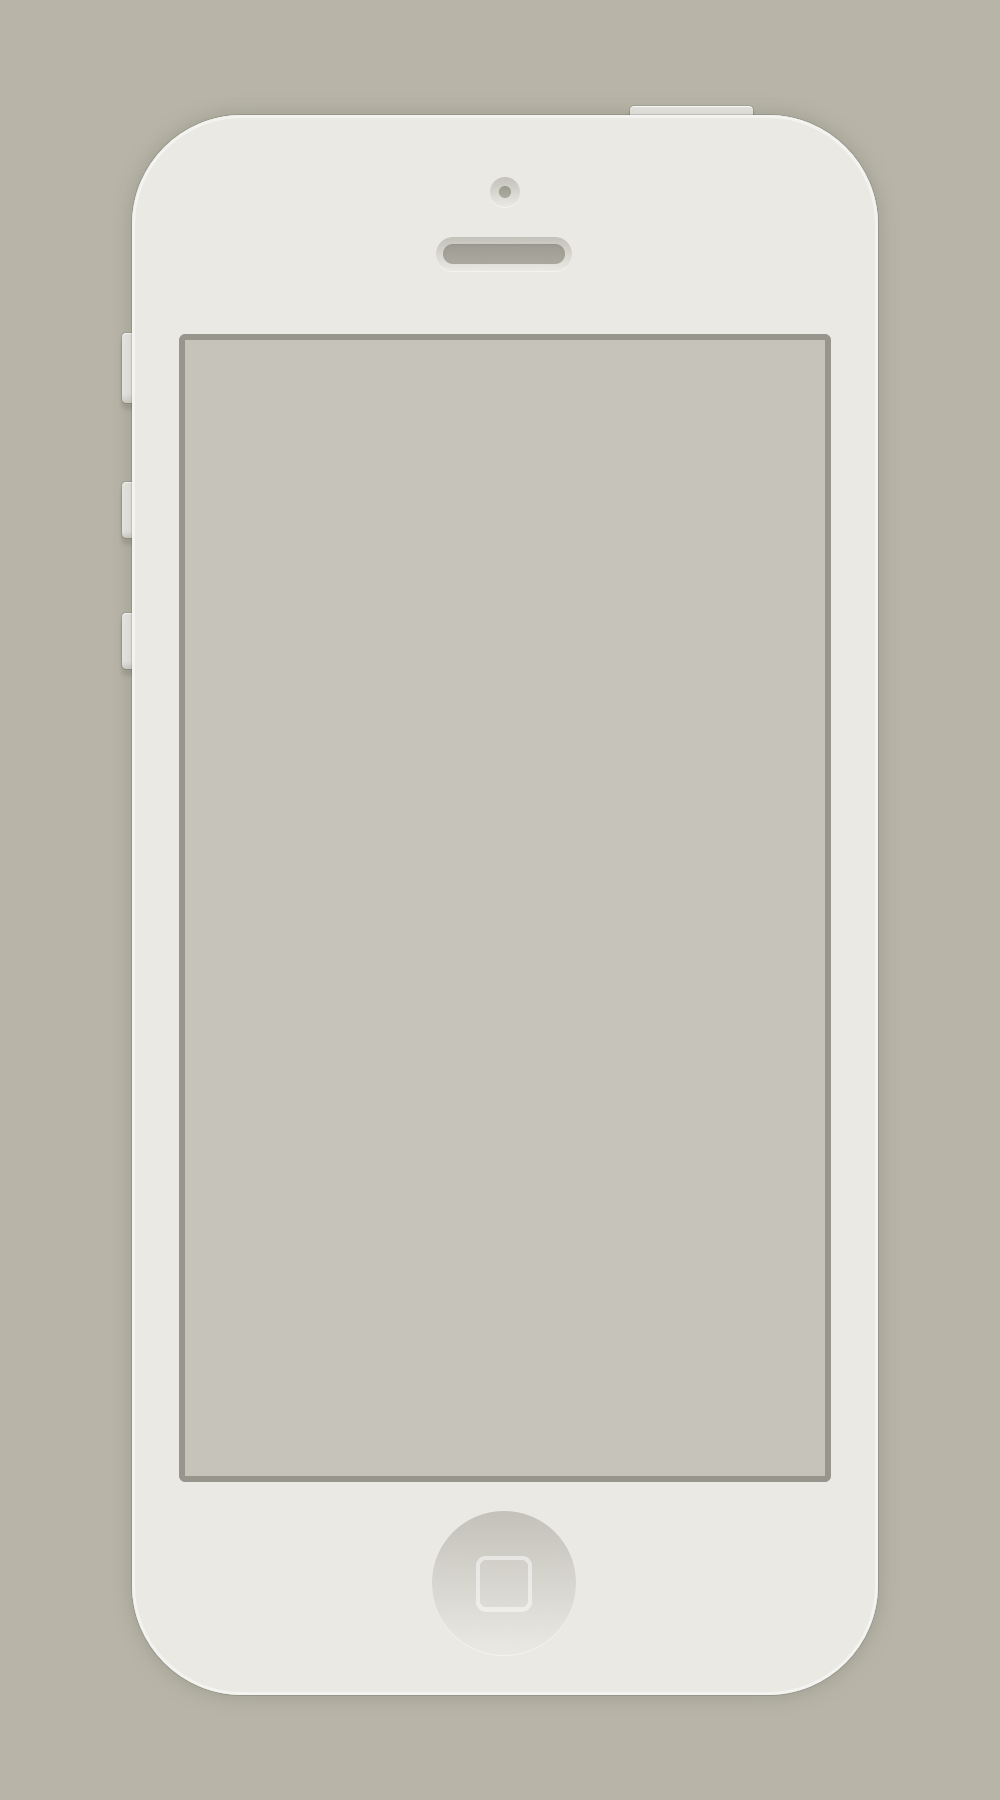 Dribbble Minimal Iphone Realism Png By Meng To